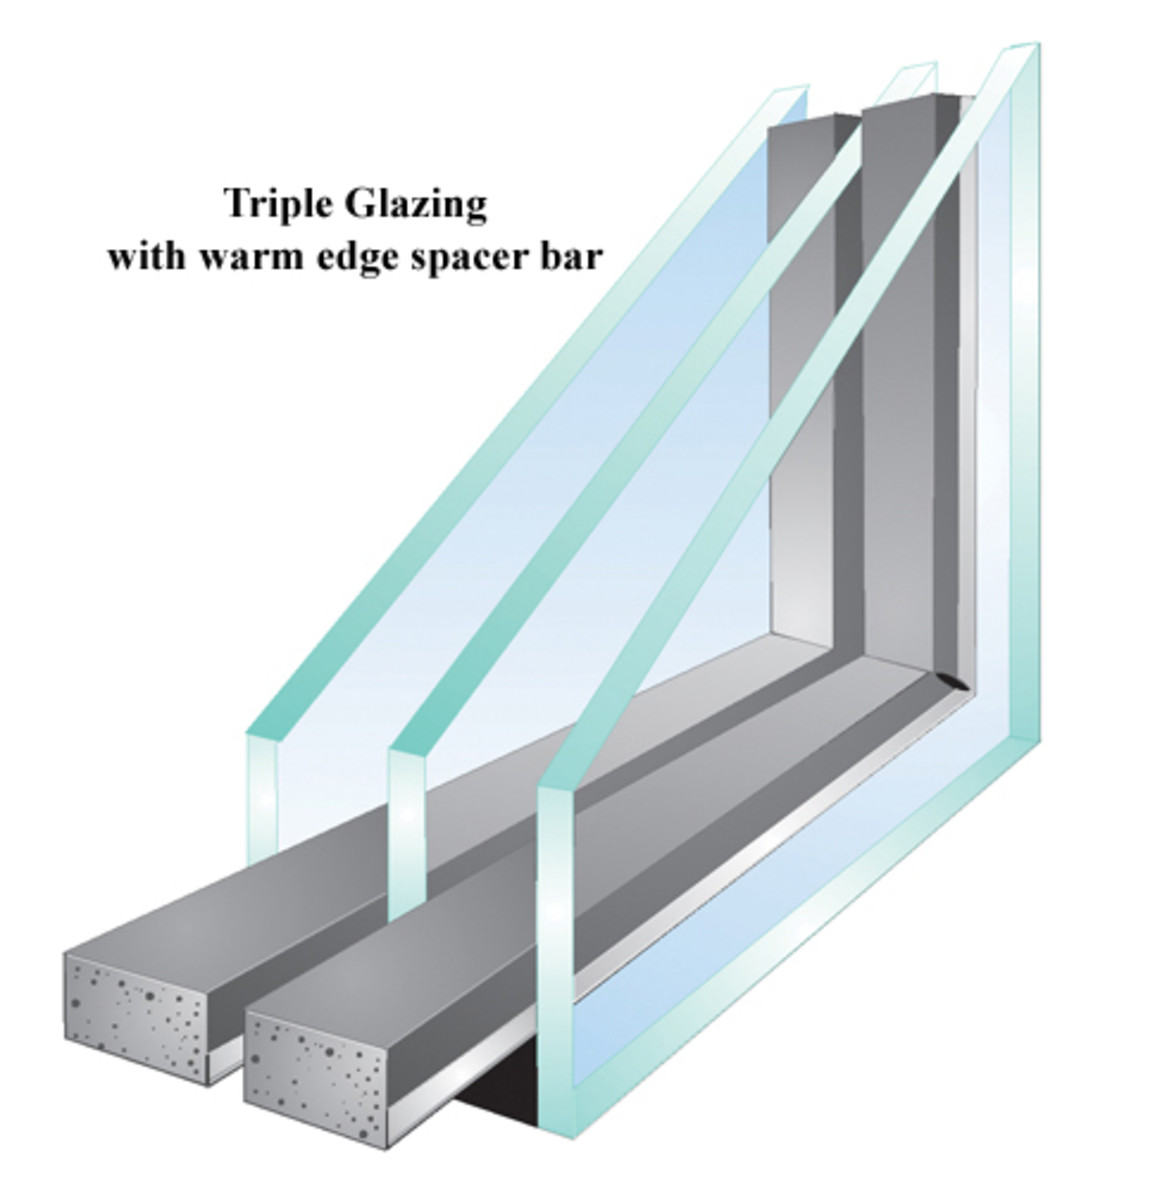 Triple Glazing with warm Edge Spacer Bar